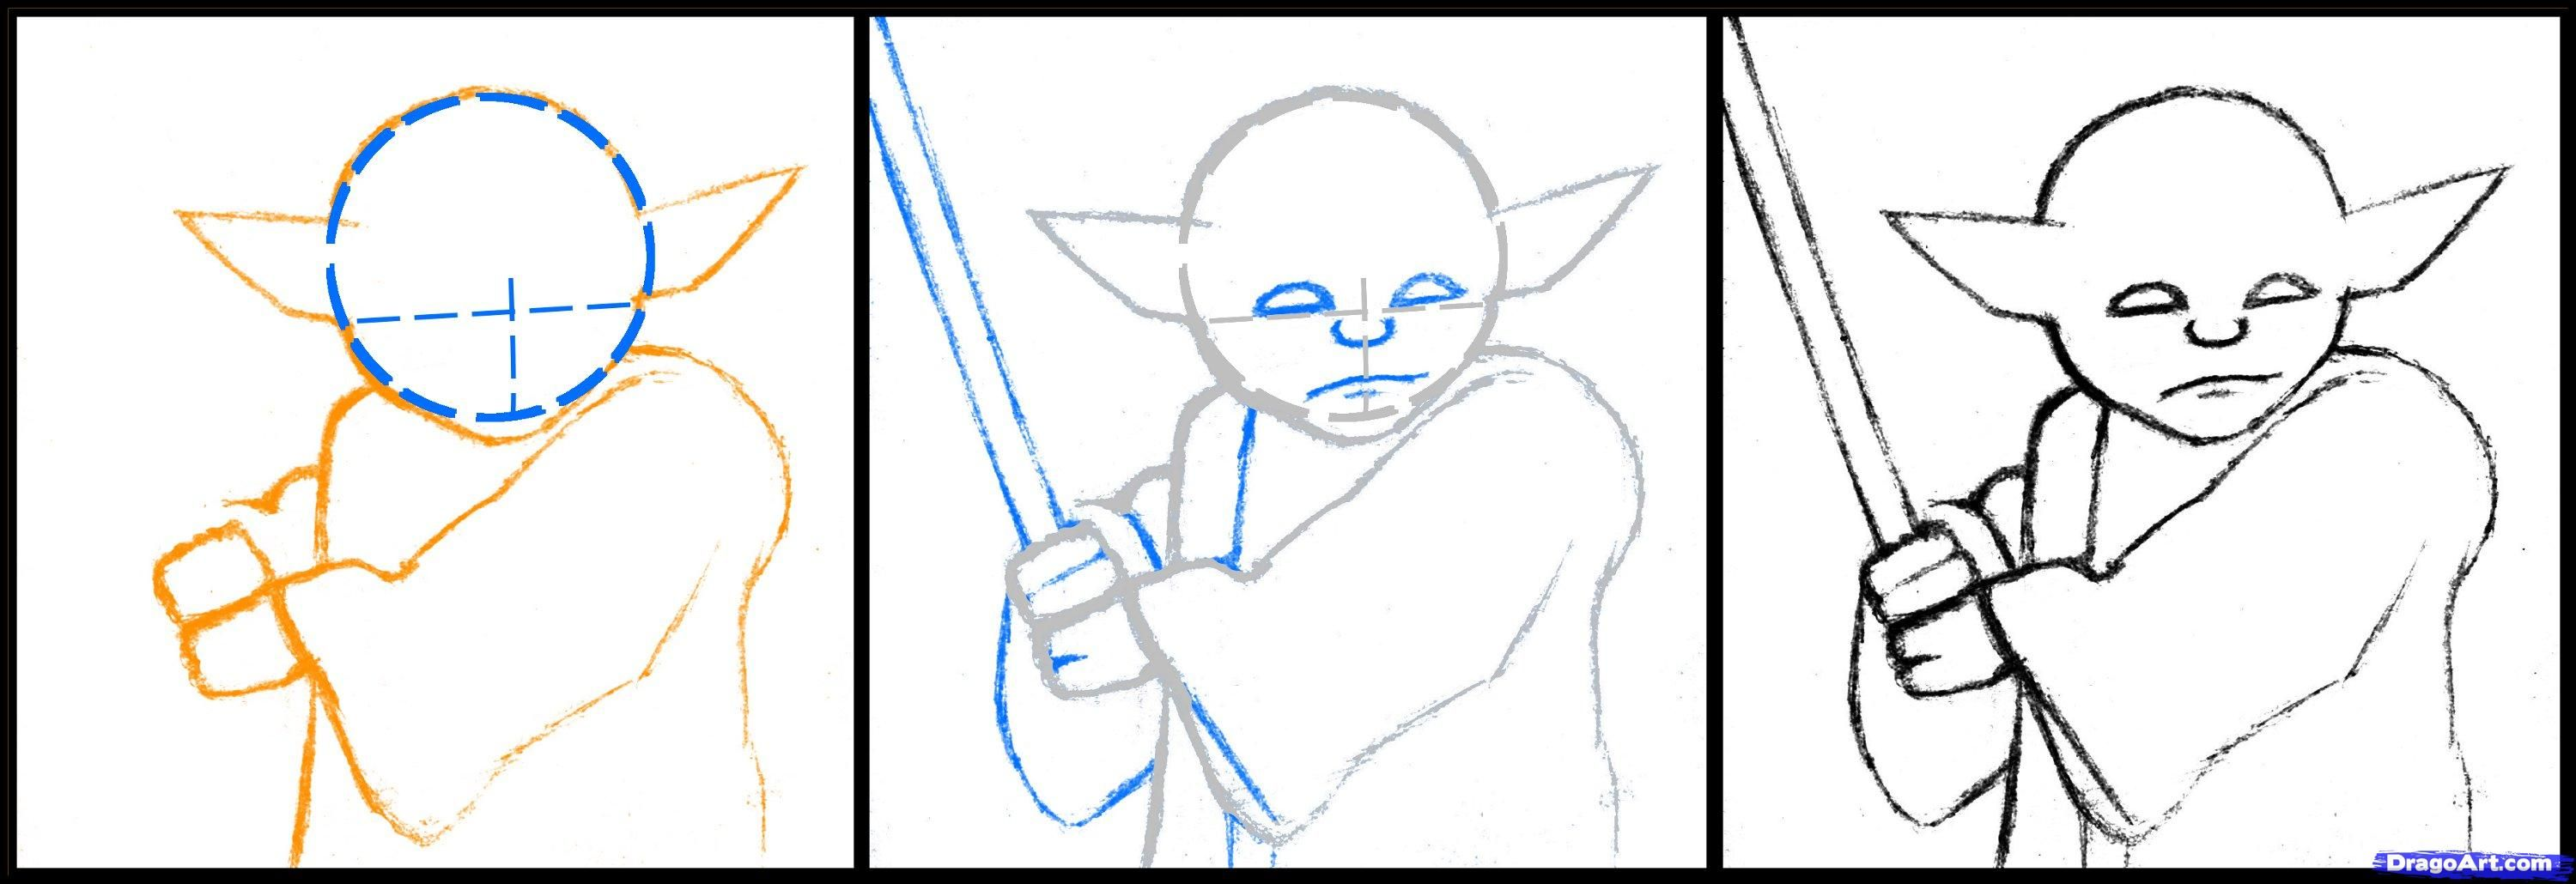 3000x1030 How To Draw Master Yoda, Star Wars, Step By Step, Star Wars